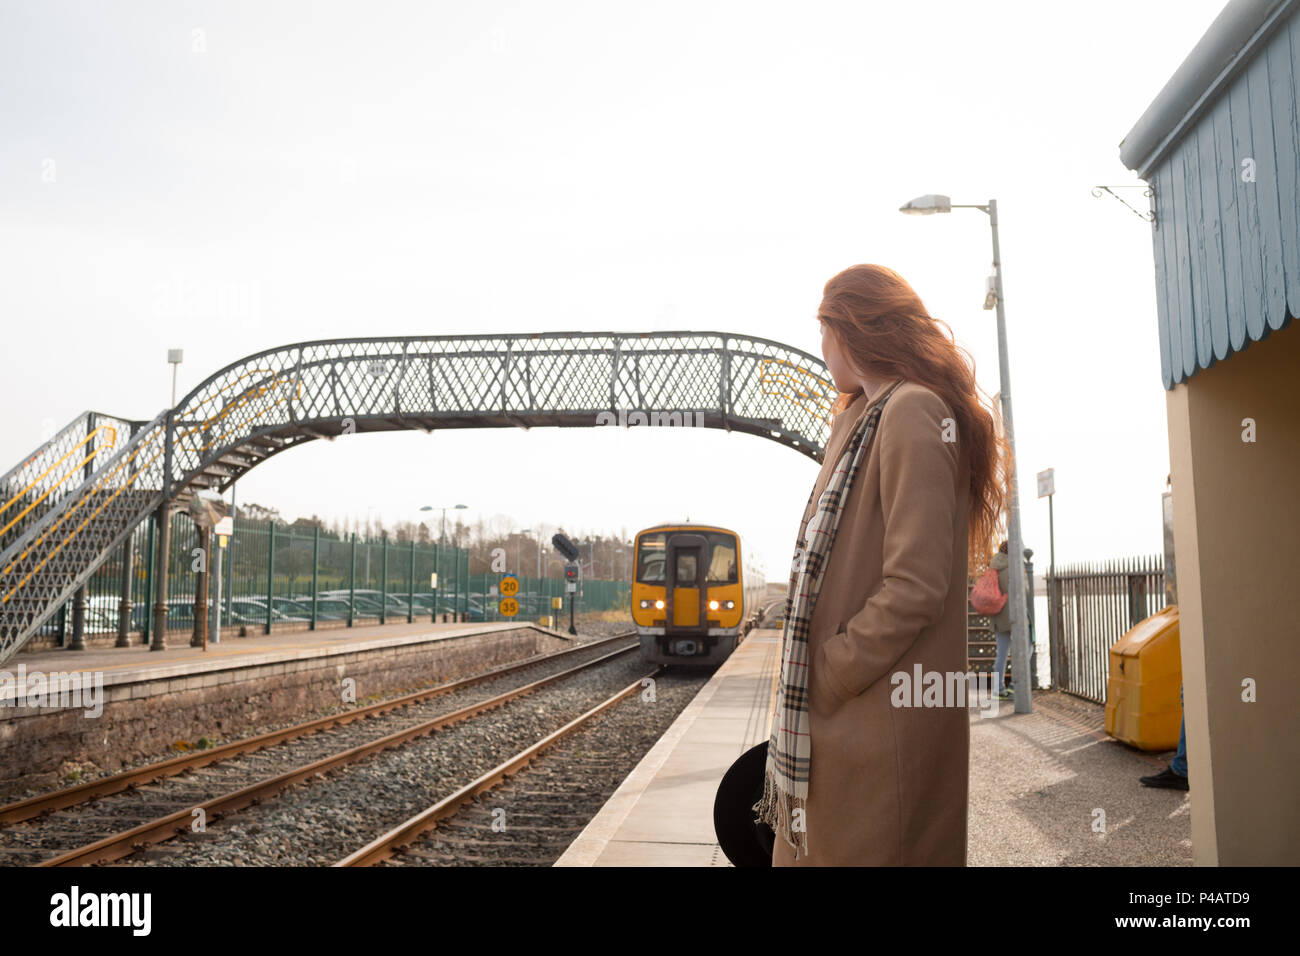 Woman standing at railway station - Stock Image